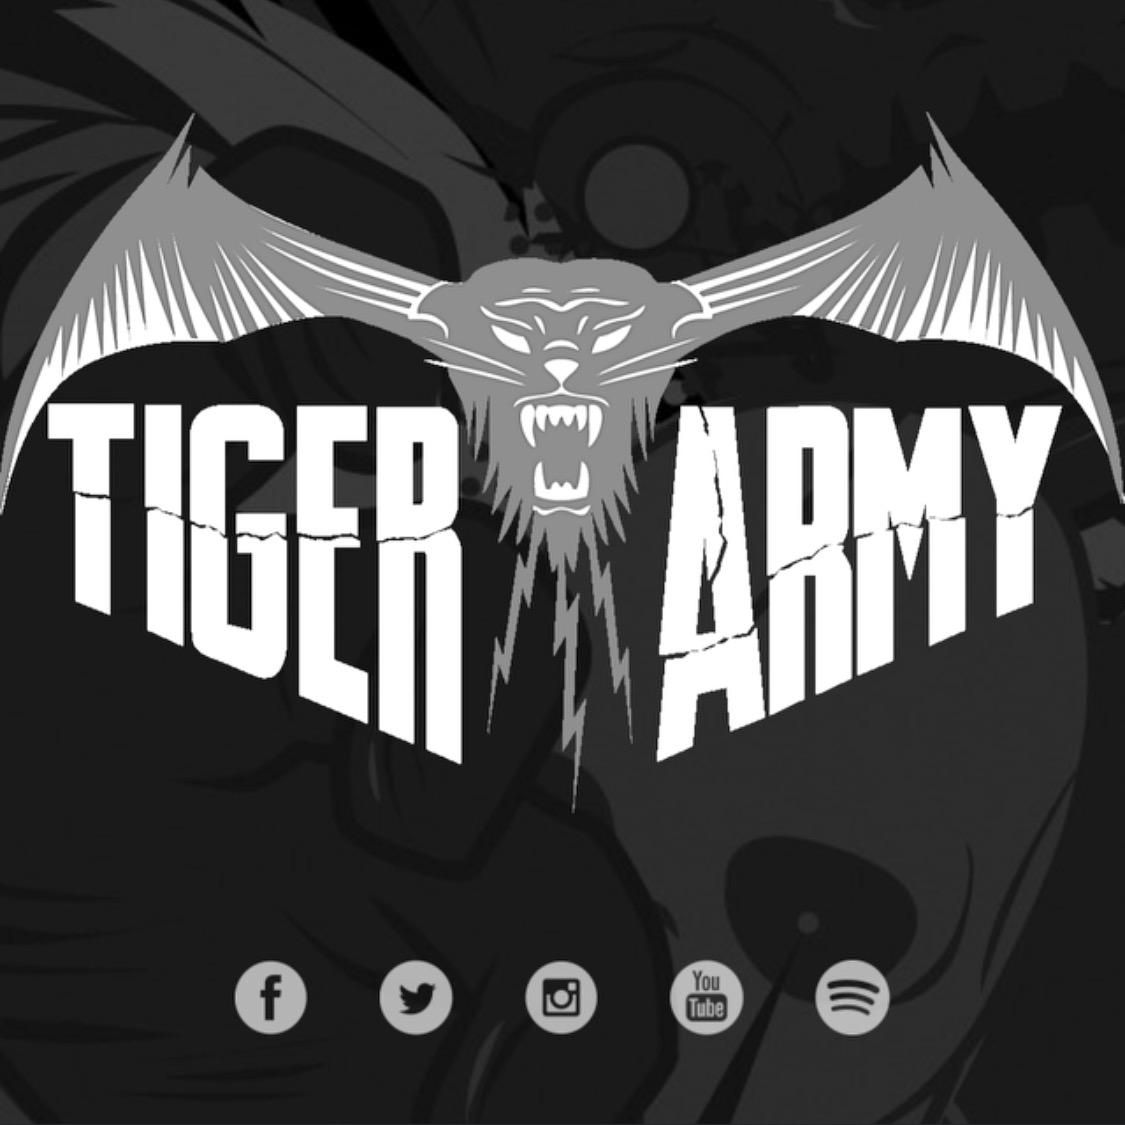 Recording of the next @tigerarmy album has begun! More info at new http://t.co/IHnFNJ6J8Z! http://t.co/MGNcmt6vfC